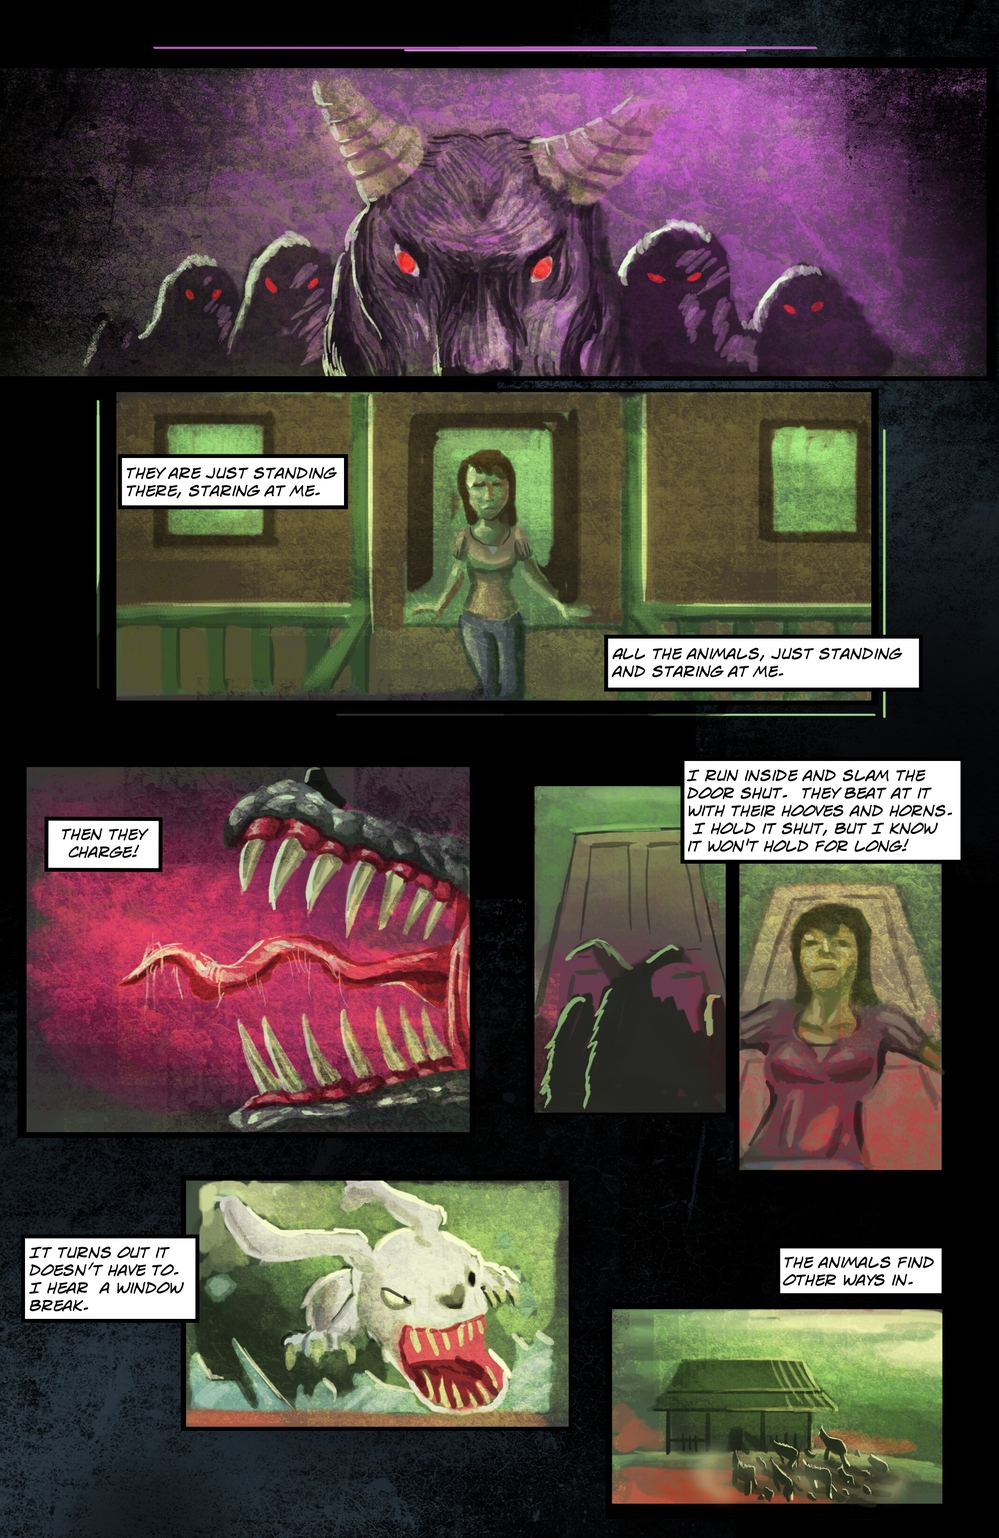 BEASTS page 4 - story 5 in The Book of Lies